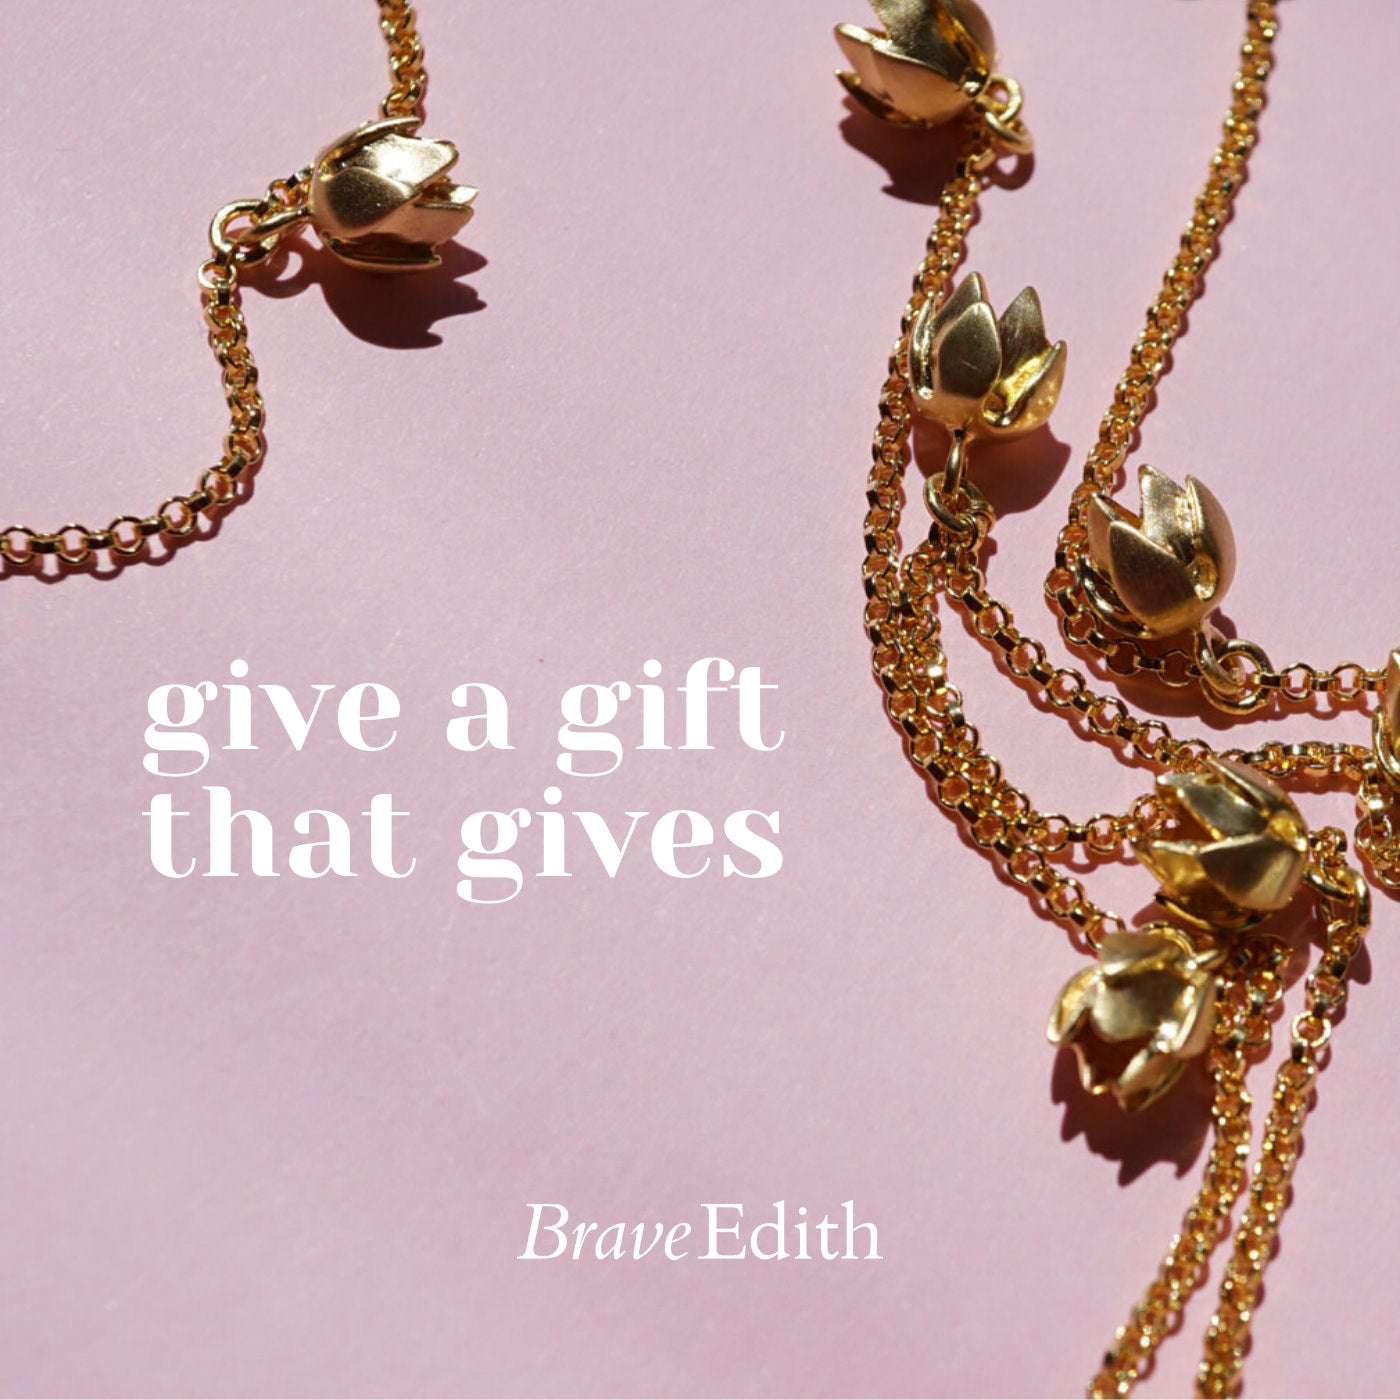 Give a gift that gives gold necklace on pink background